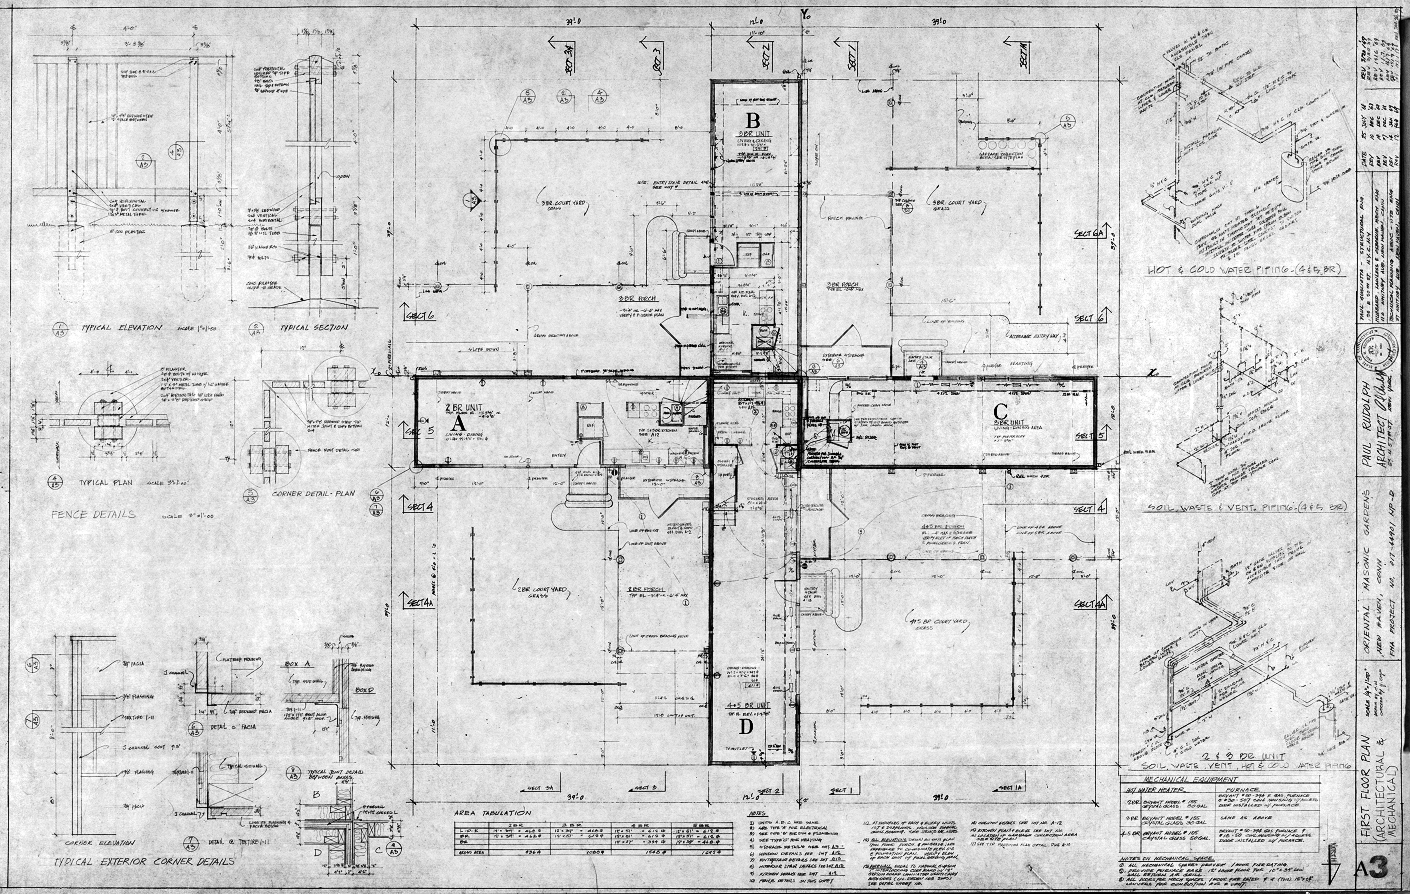 Oriental Masonic Gardens, Wilmot Road, New Haven, Connecticut. First Floor Plan (Arch & Mech), Sheet A-3